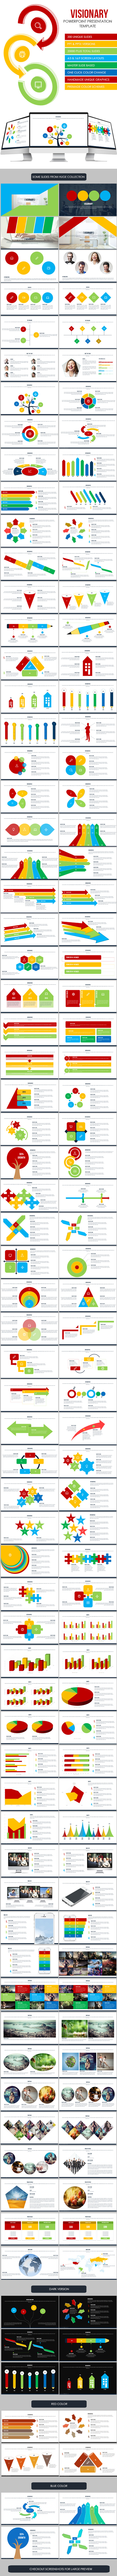 Visionary Powerpoint Presentation Template - Business PowerPoint Templates